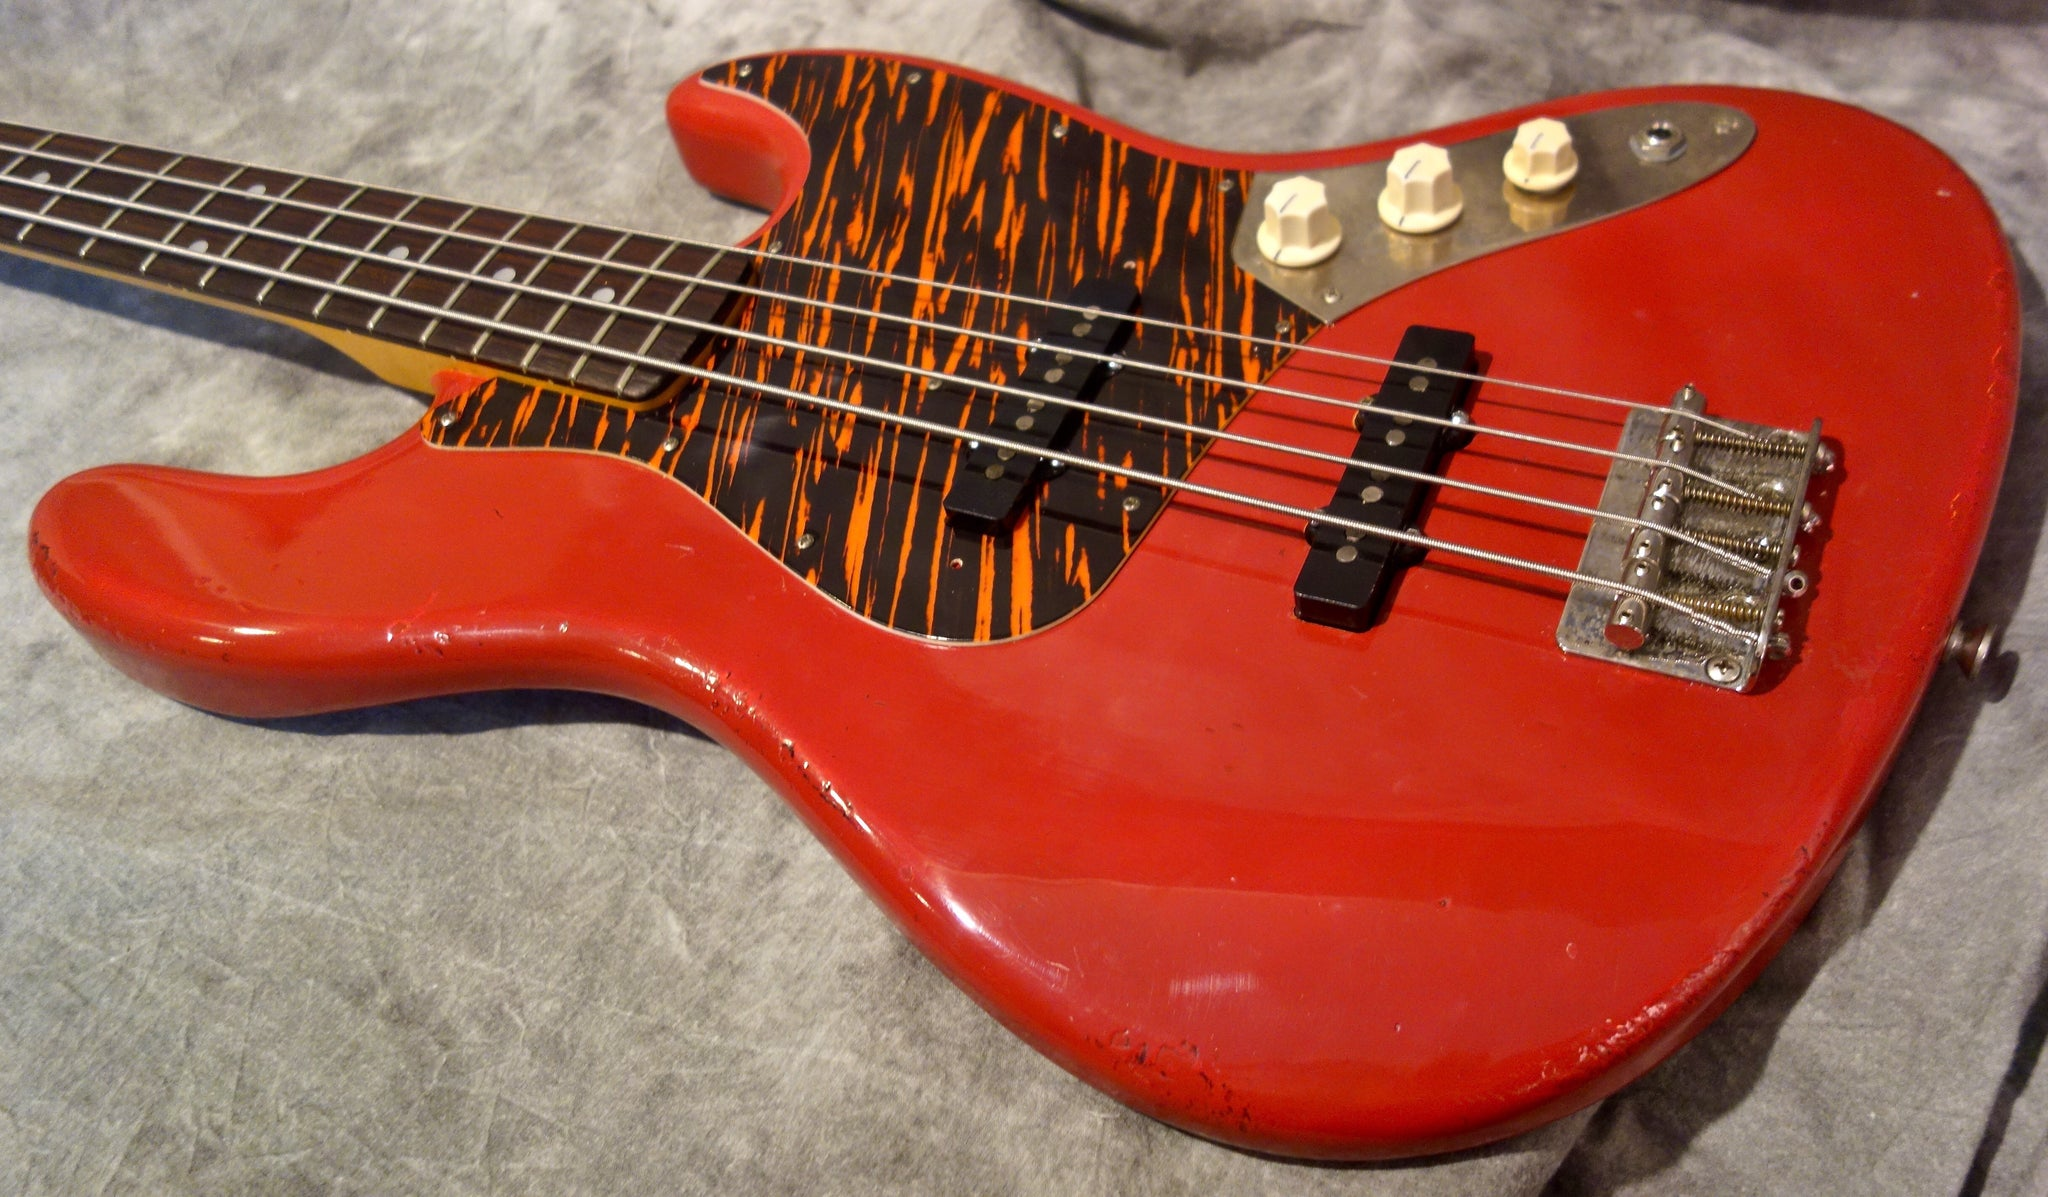 Jimmy Wallace VJ Bass